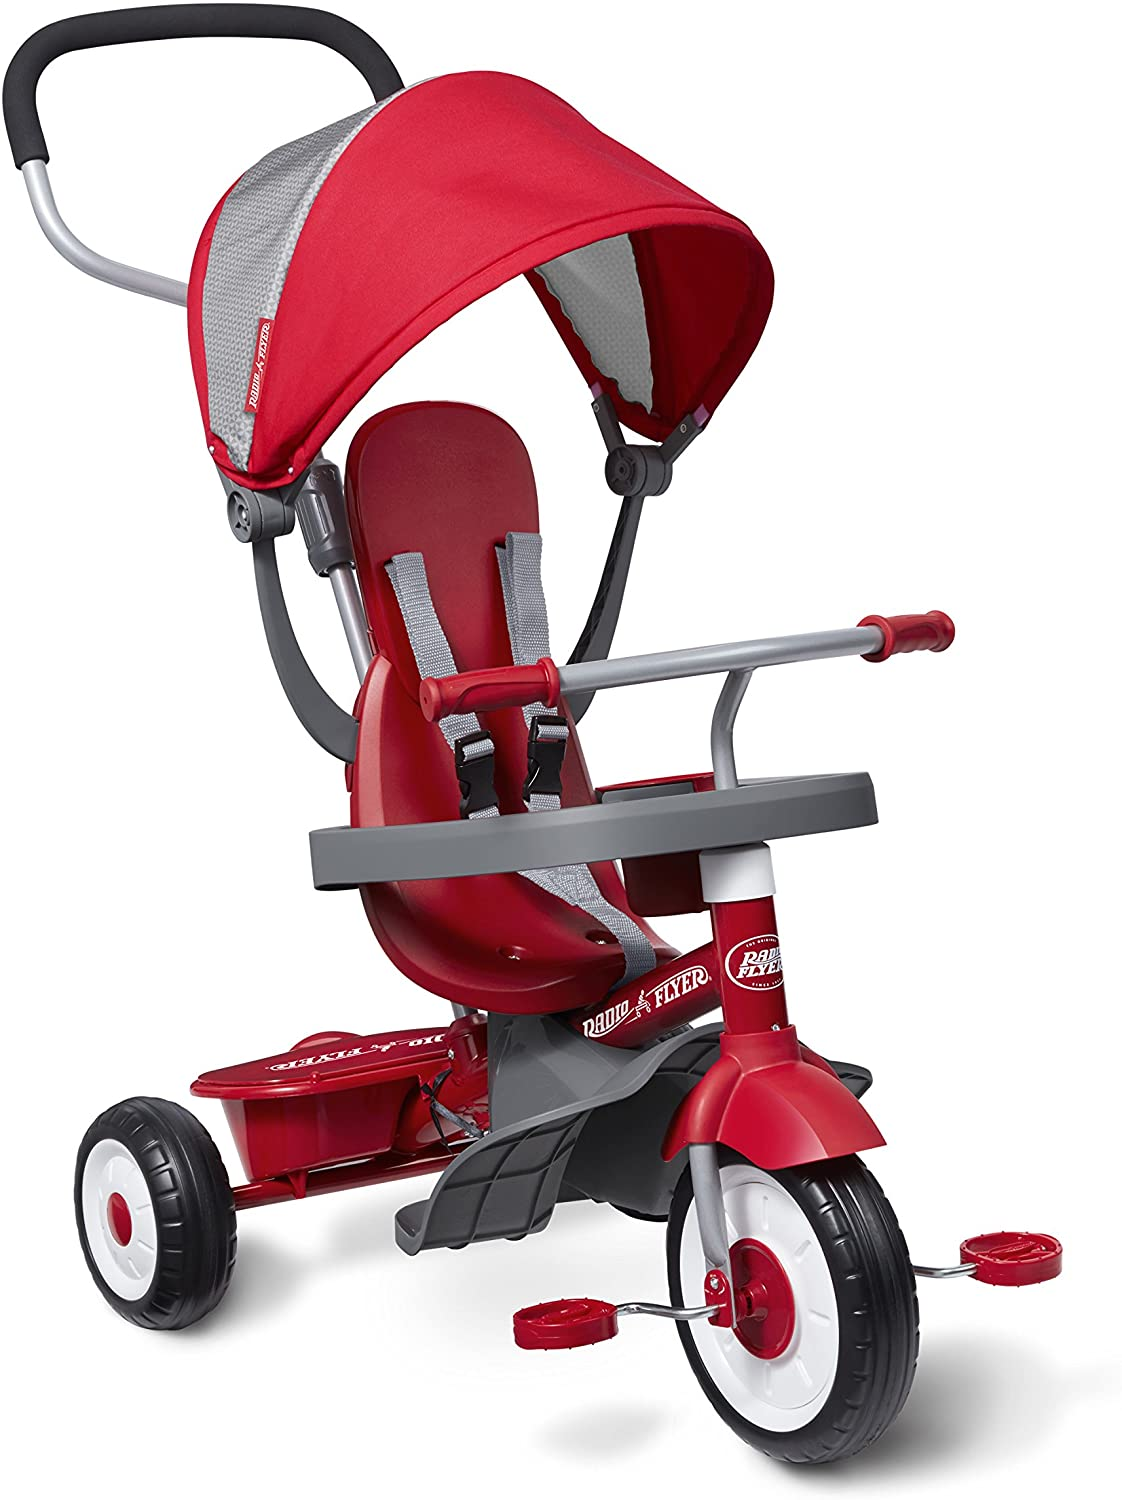 5 best Tricycle for kids